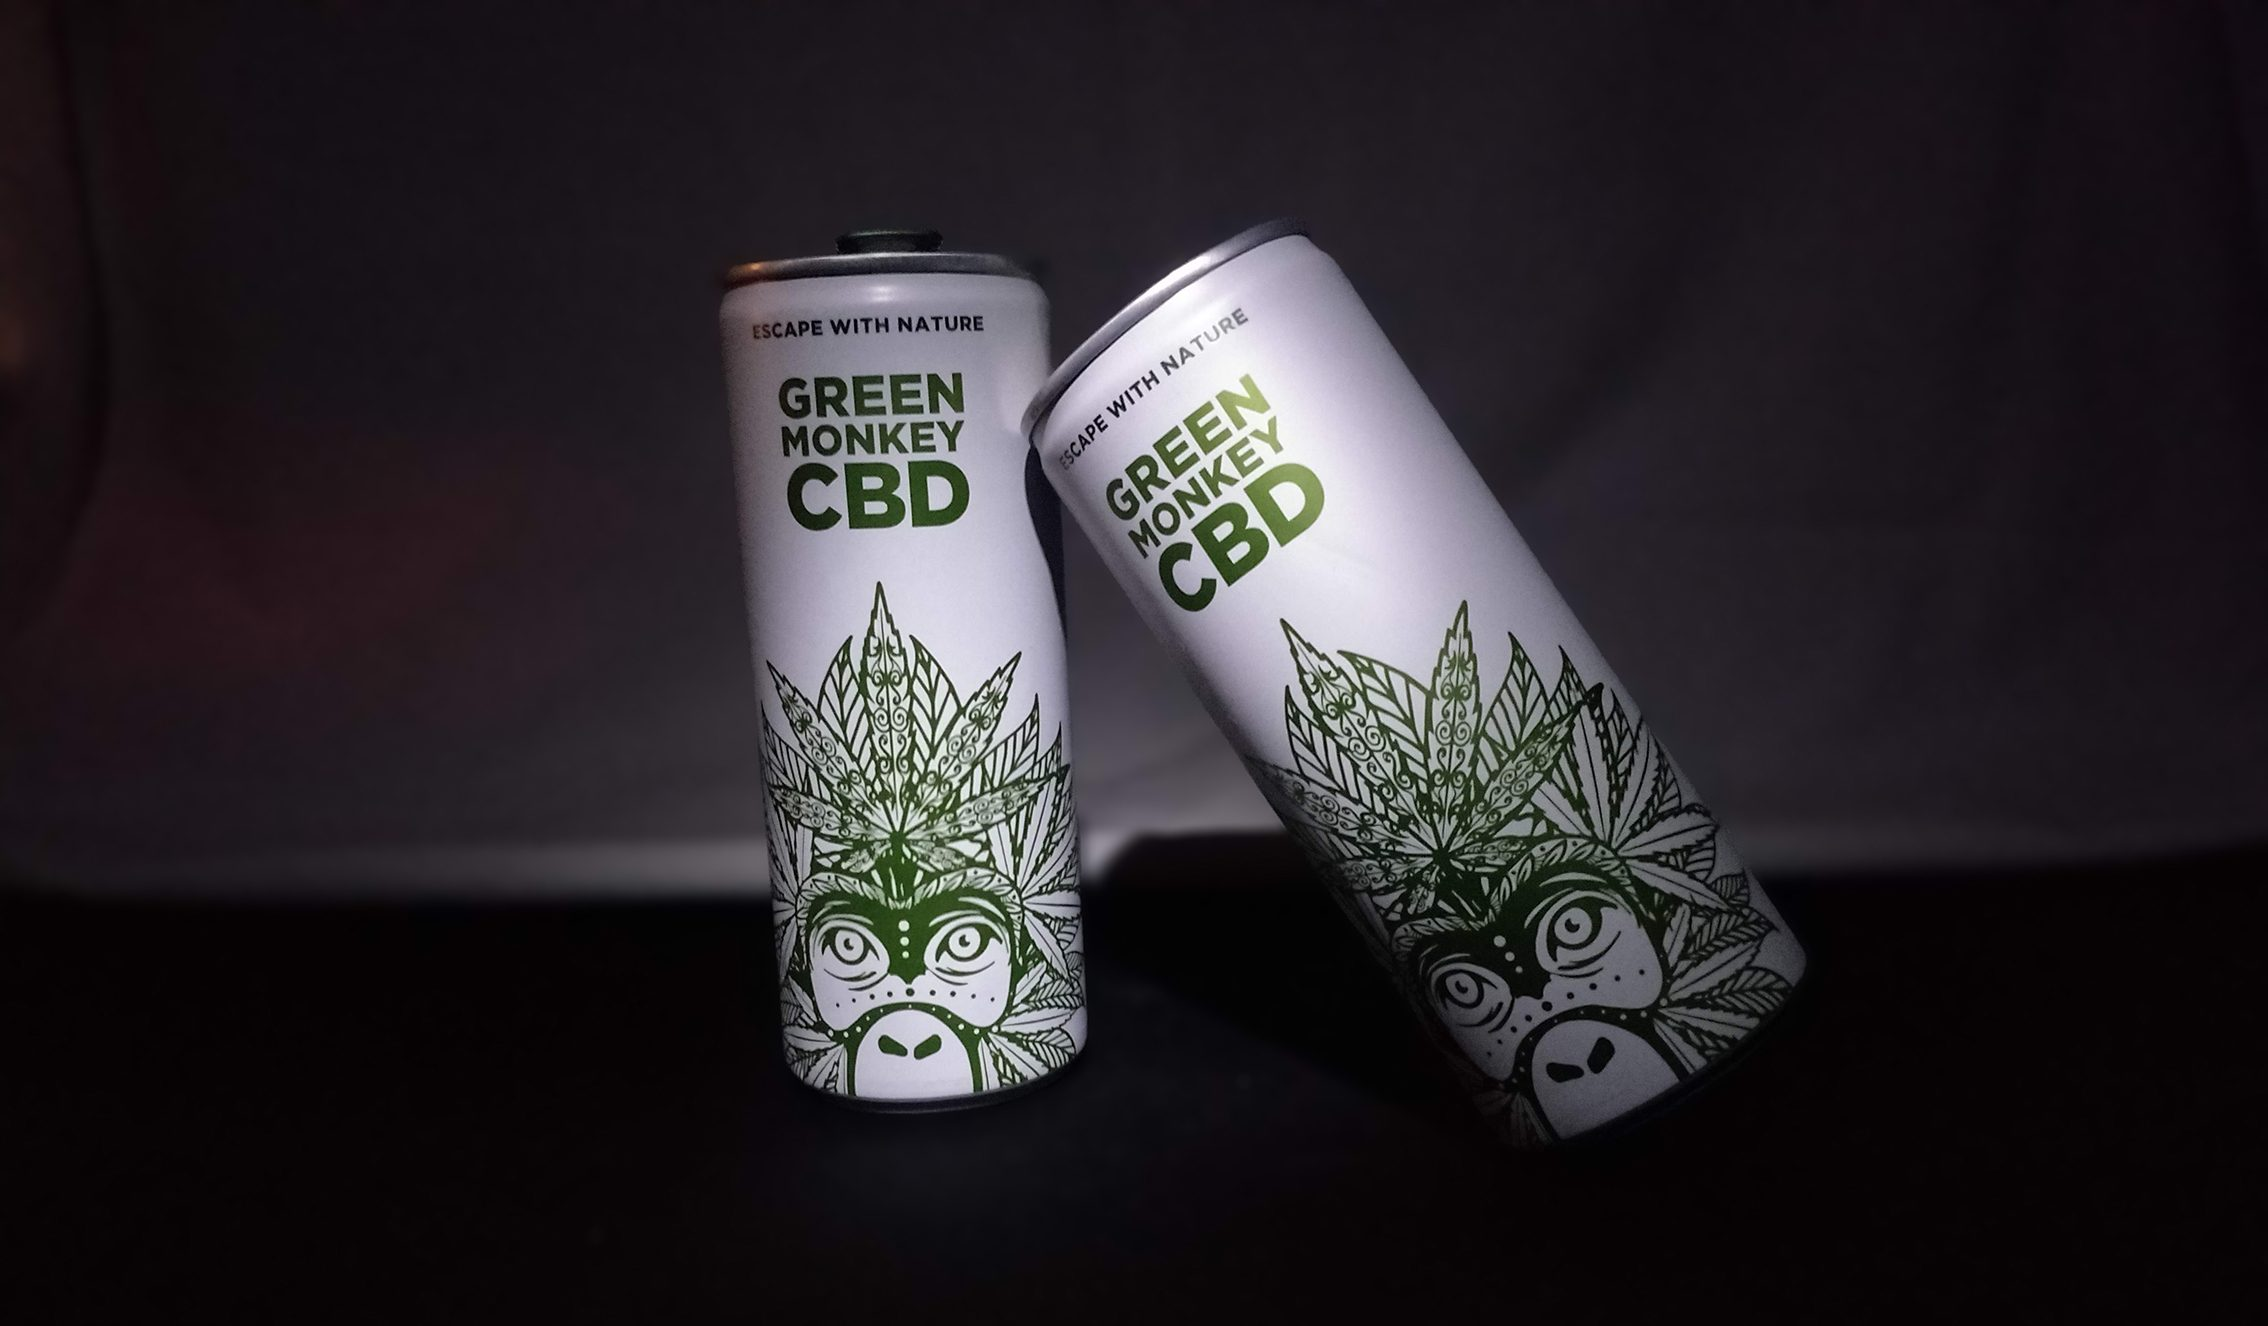 Two cans of Green Monkey CBD